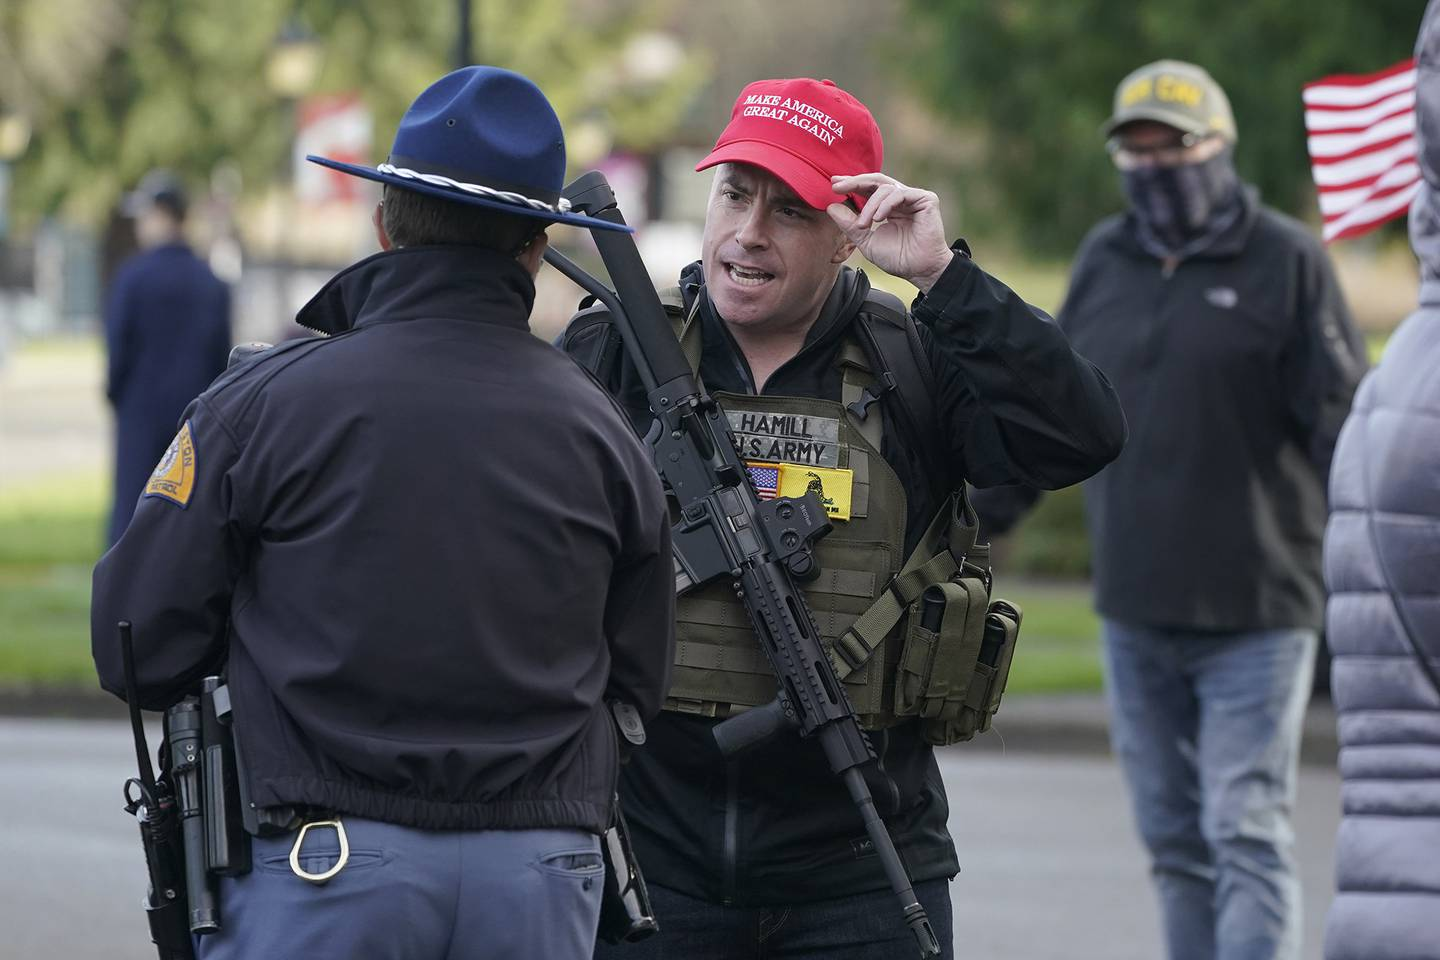 An armed supporter of President Donald Trump speaks casually with a Washington State Patrol trooper during a rally, Sunday, Jan. 10, 2021, at the Capitol in Olympia, Wash.